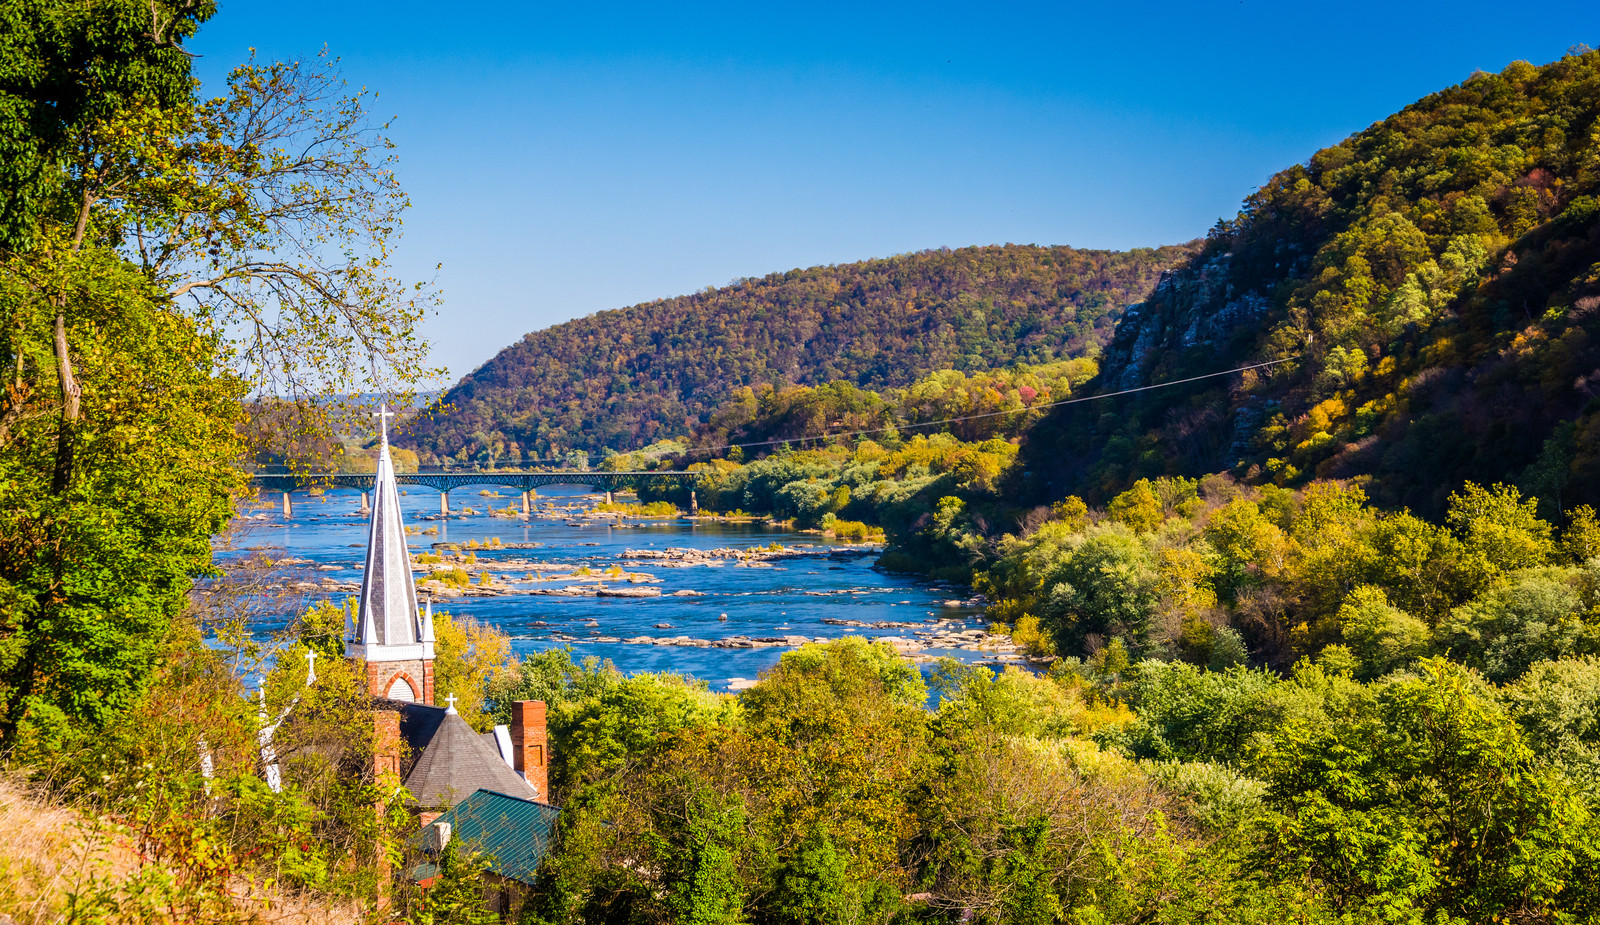 Top 5 Places To Retire in Retire in West Virginia-Sunny day overlooking the Potamac River and St. Peters Roman Catholic church